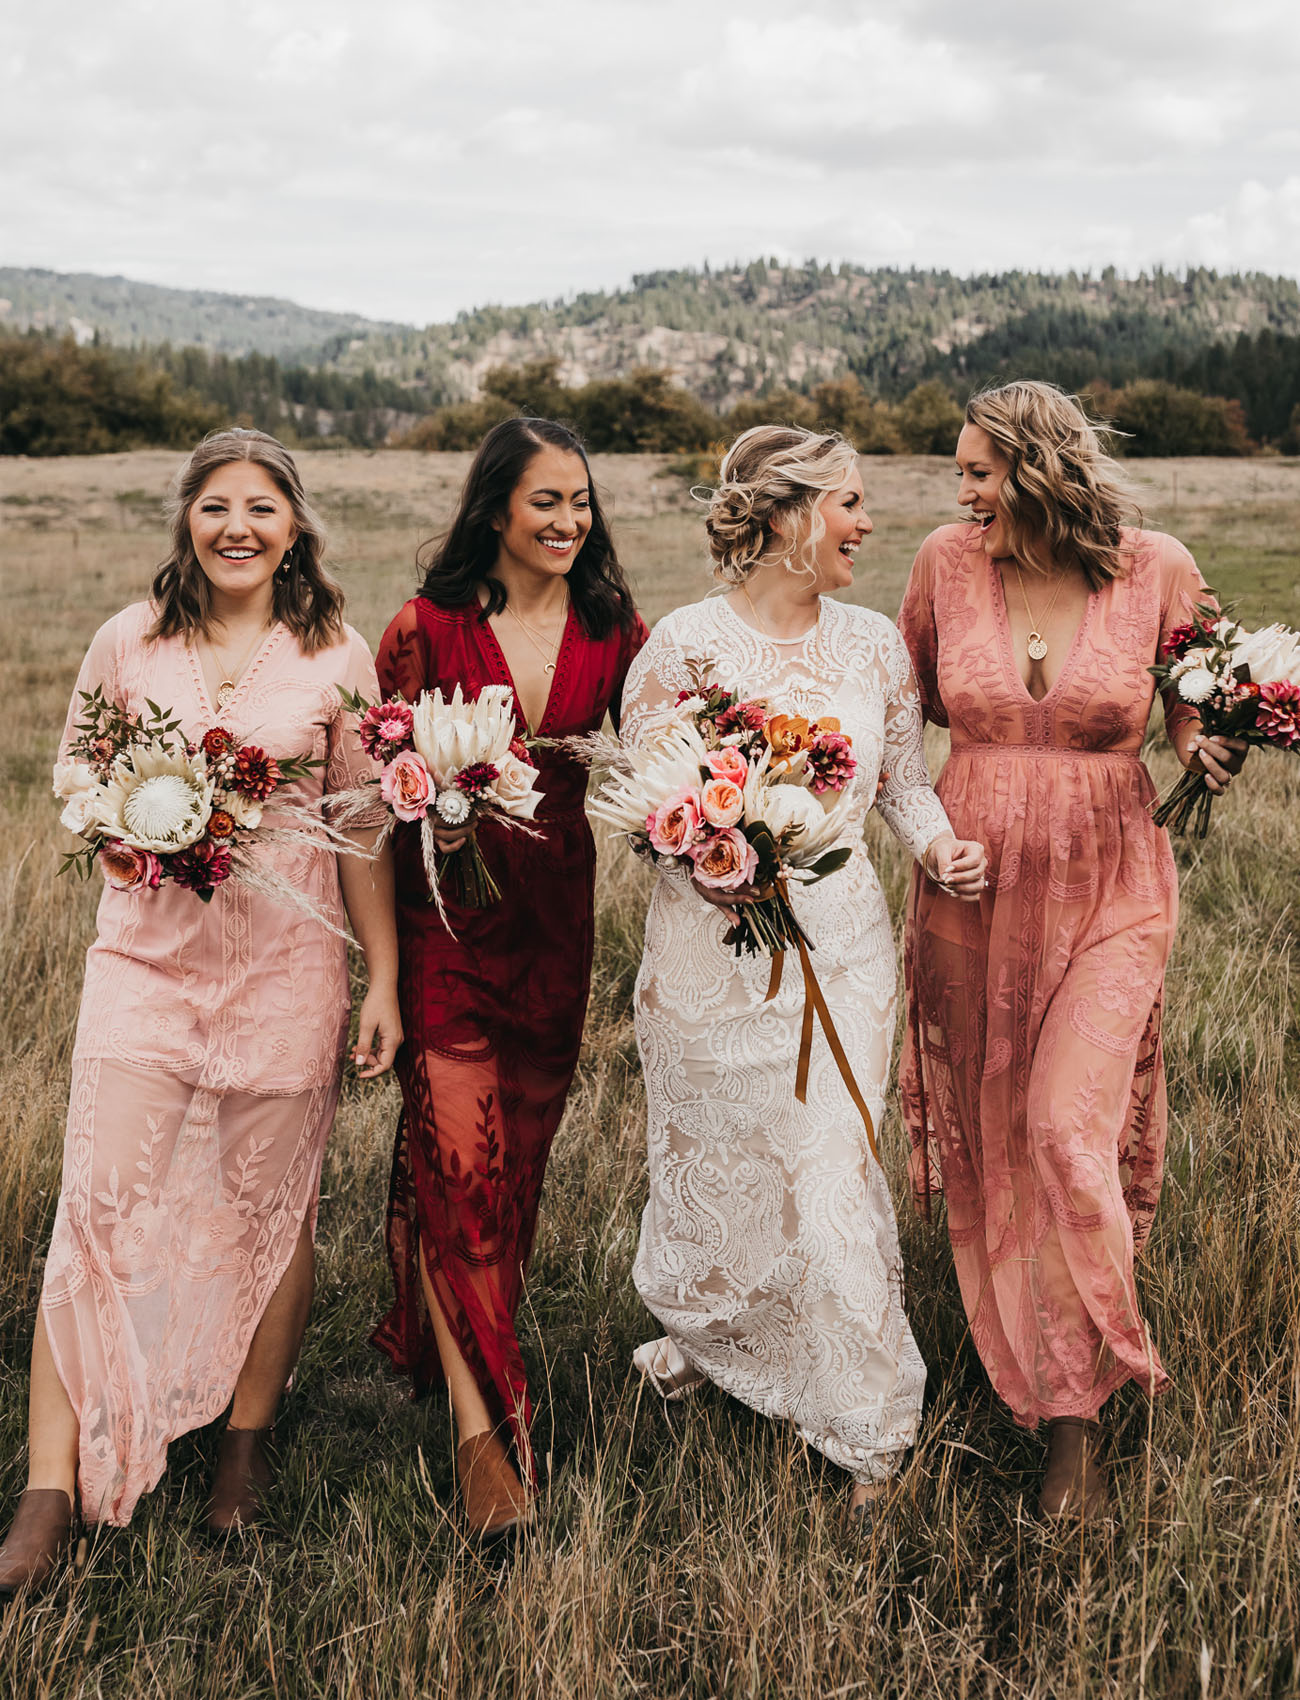 It Was All Good Vibes, Crystals, and Festival Seating for this Bohemian Mountain Wedding